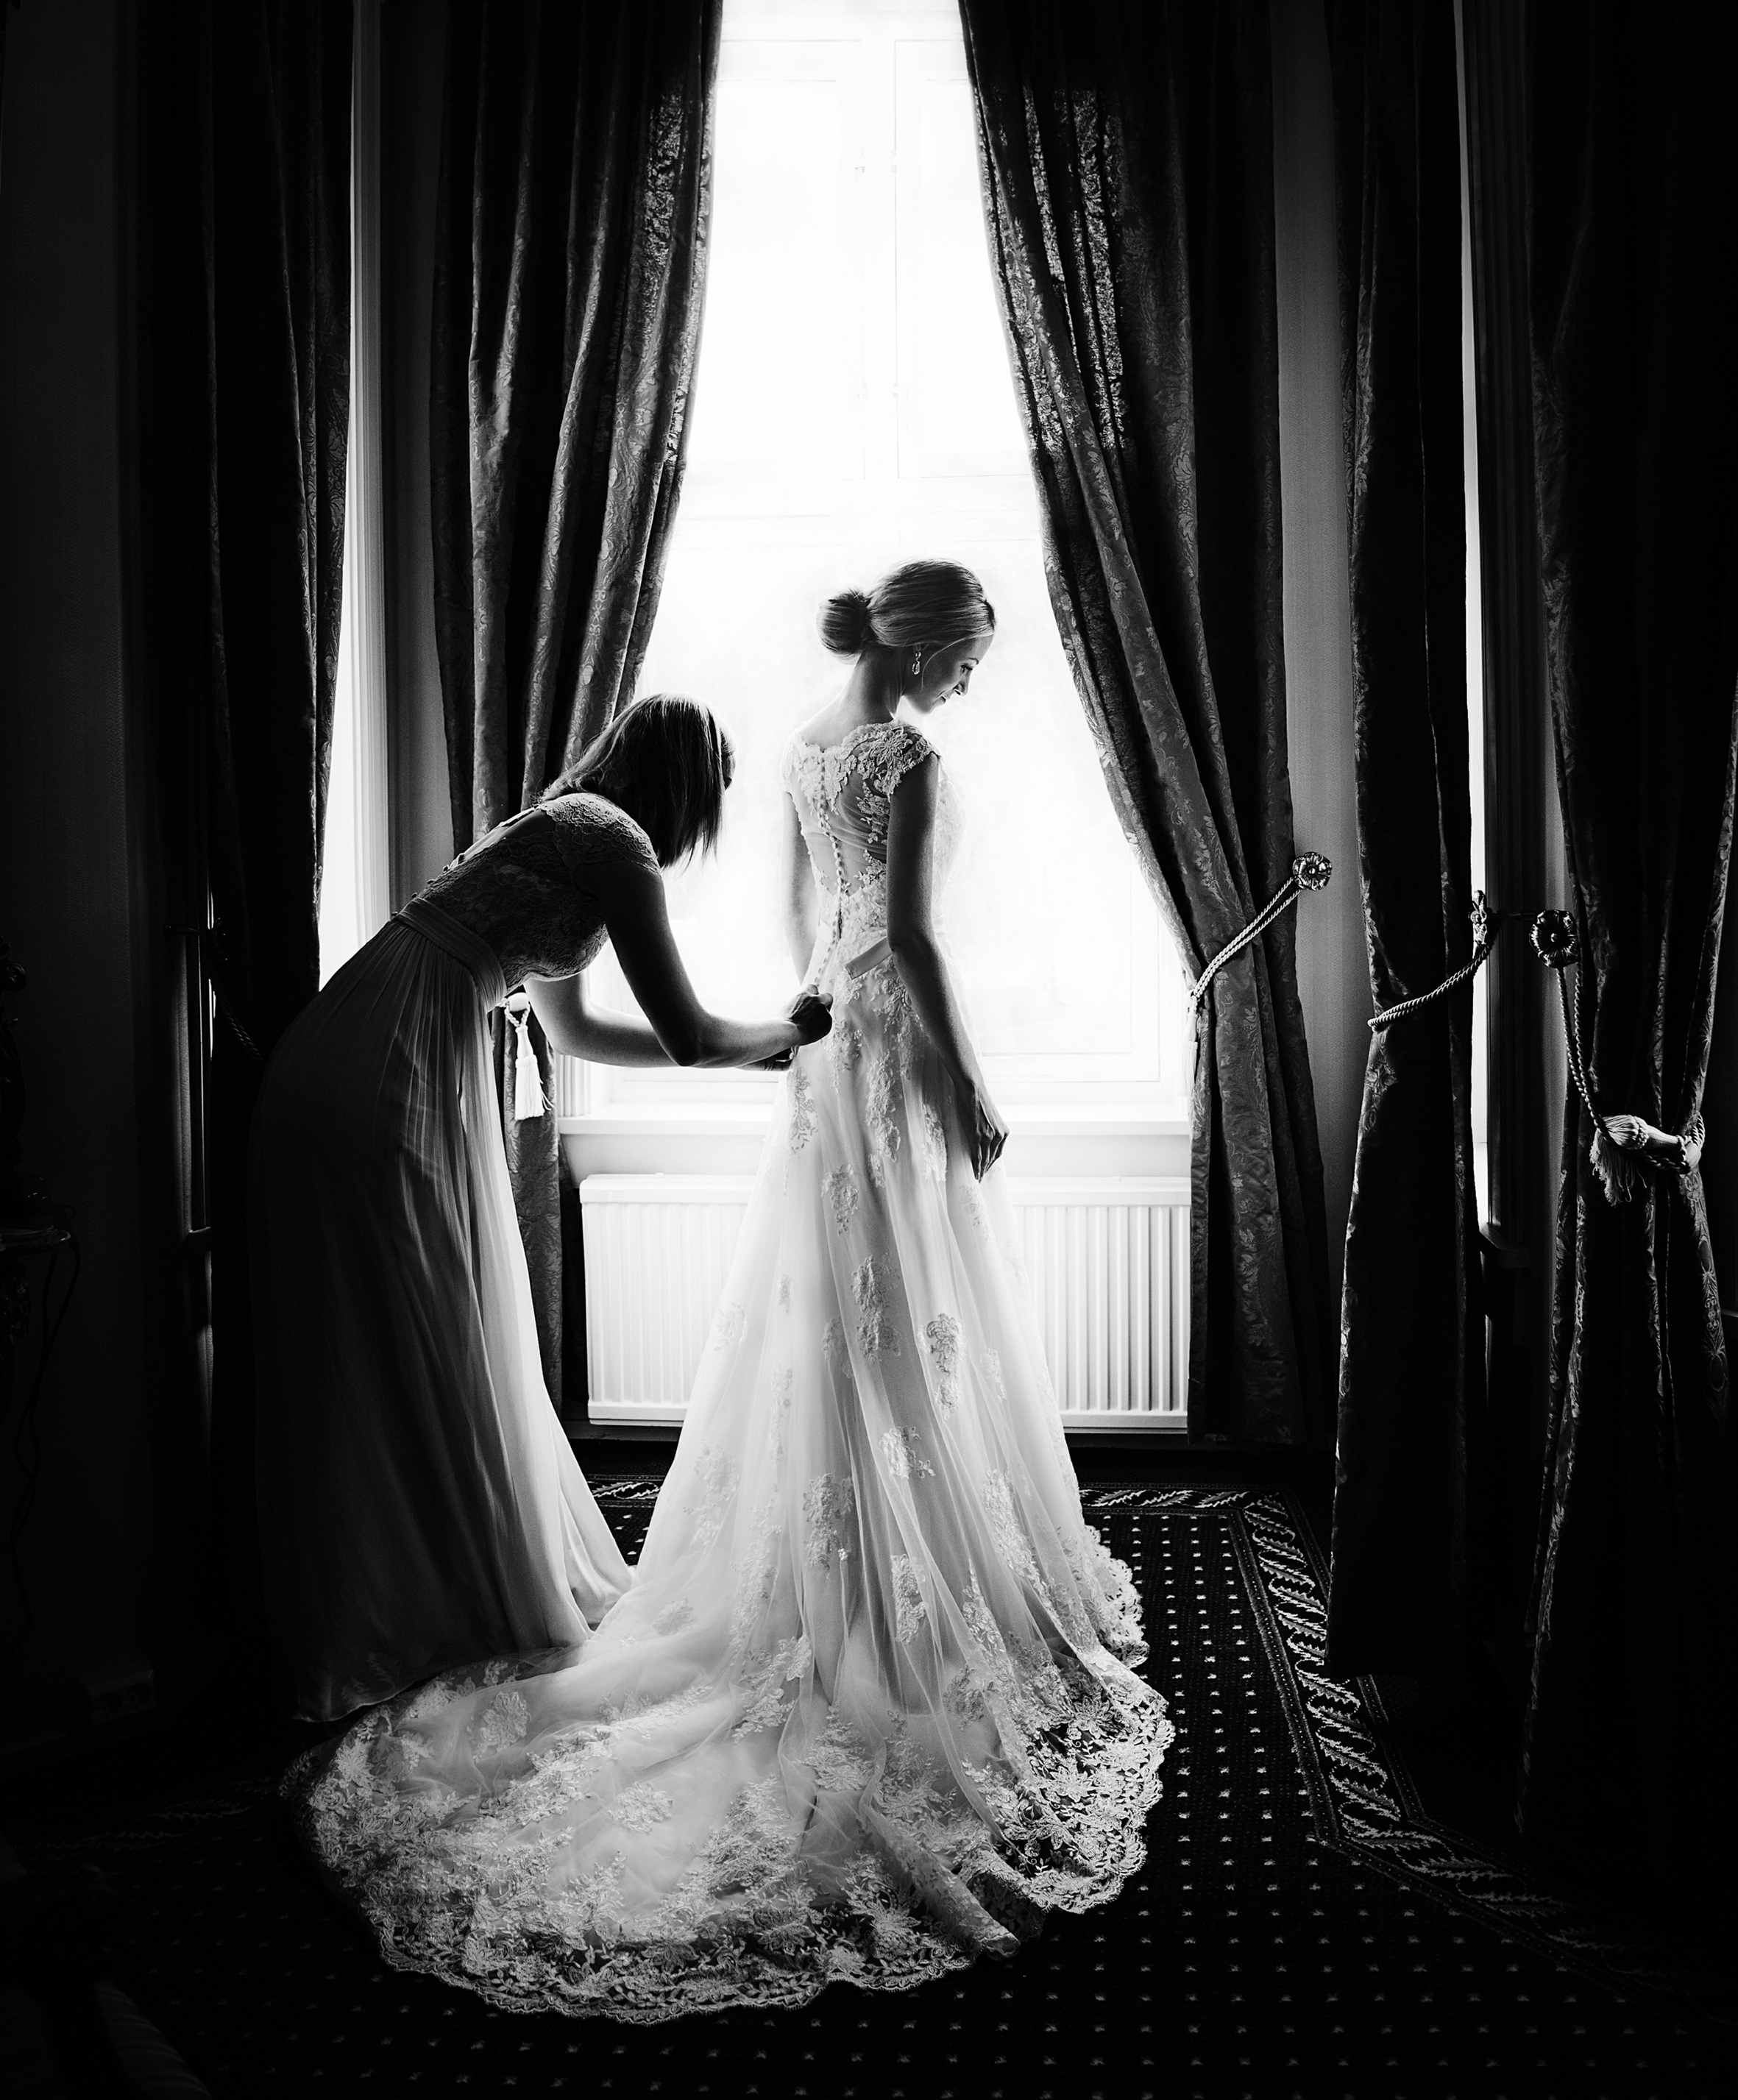 Bride gets ready against long window light - photo by Froydis Geithus